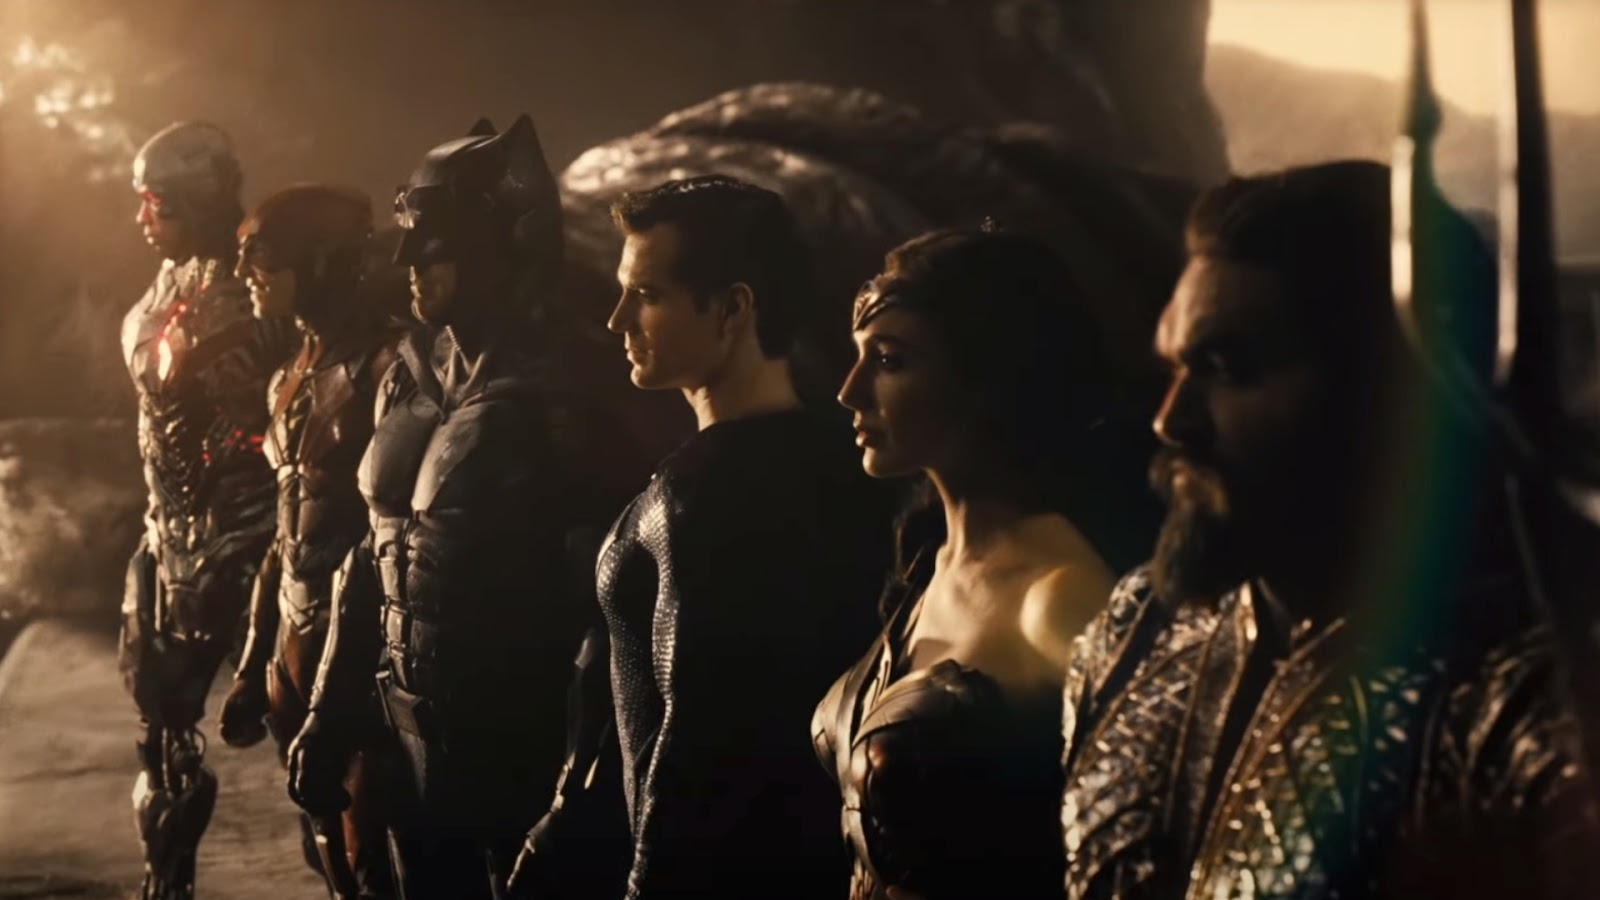 """Zack Snyder's Justice League review: """"A fascinating, flawed climax to  Snyder's grand DC experiment"""" 